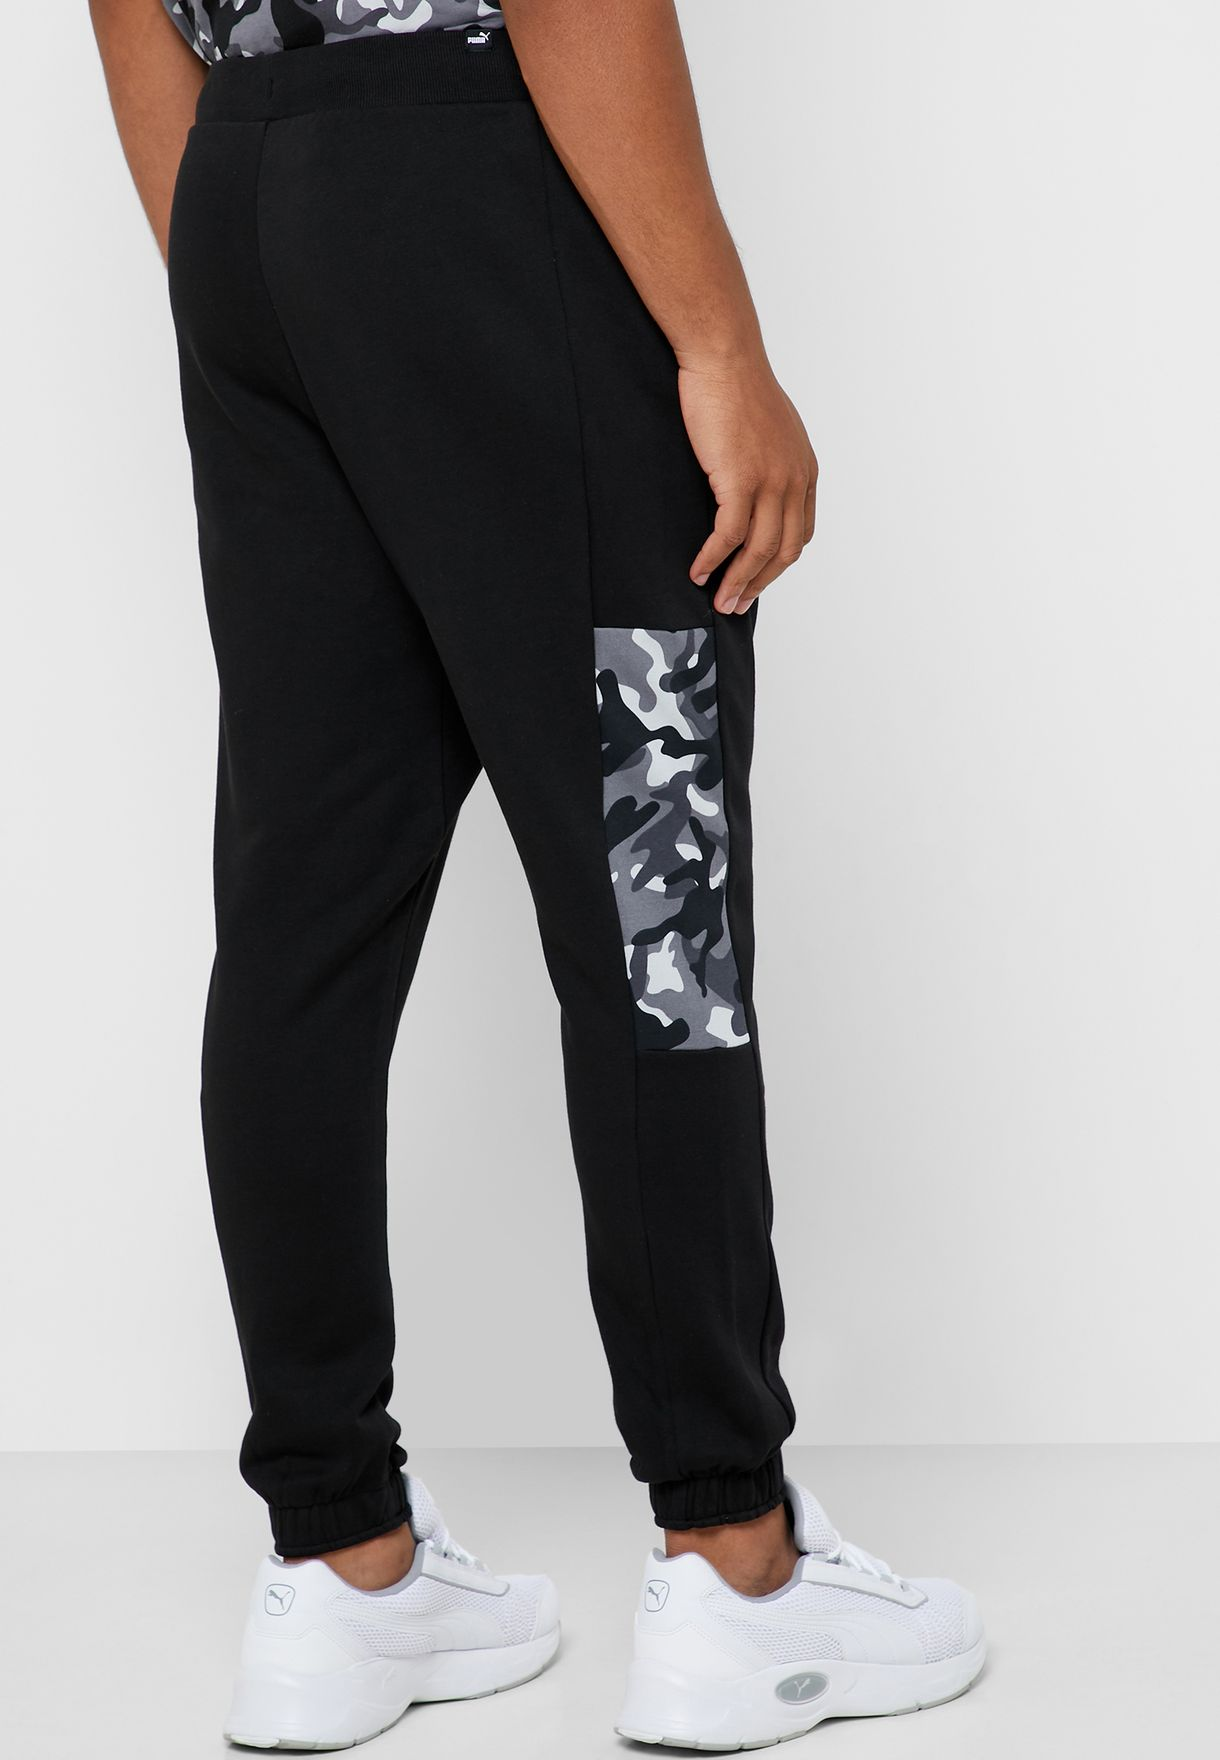 Rebel Camo Sweatpants